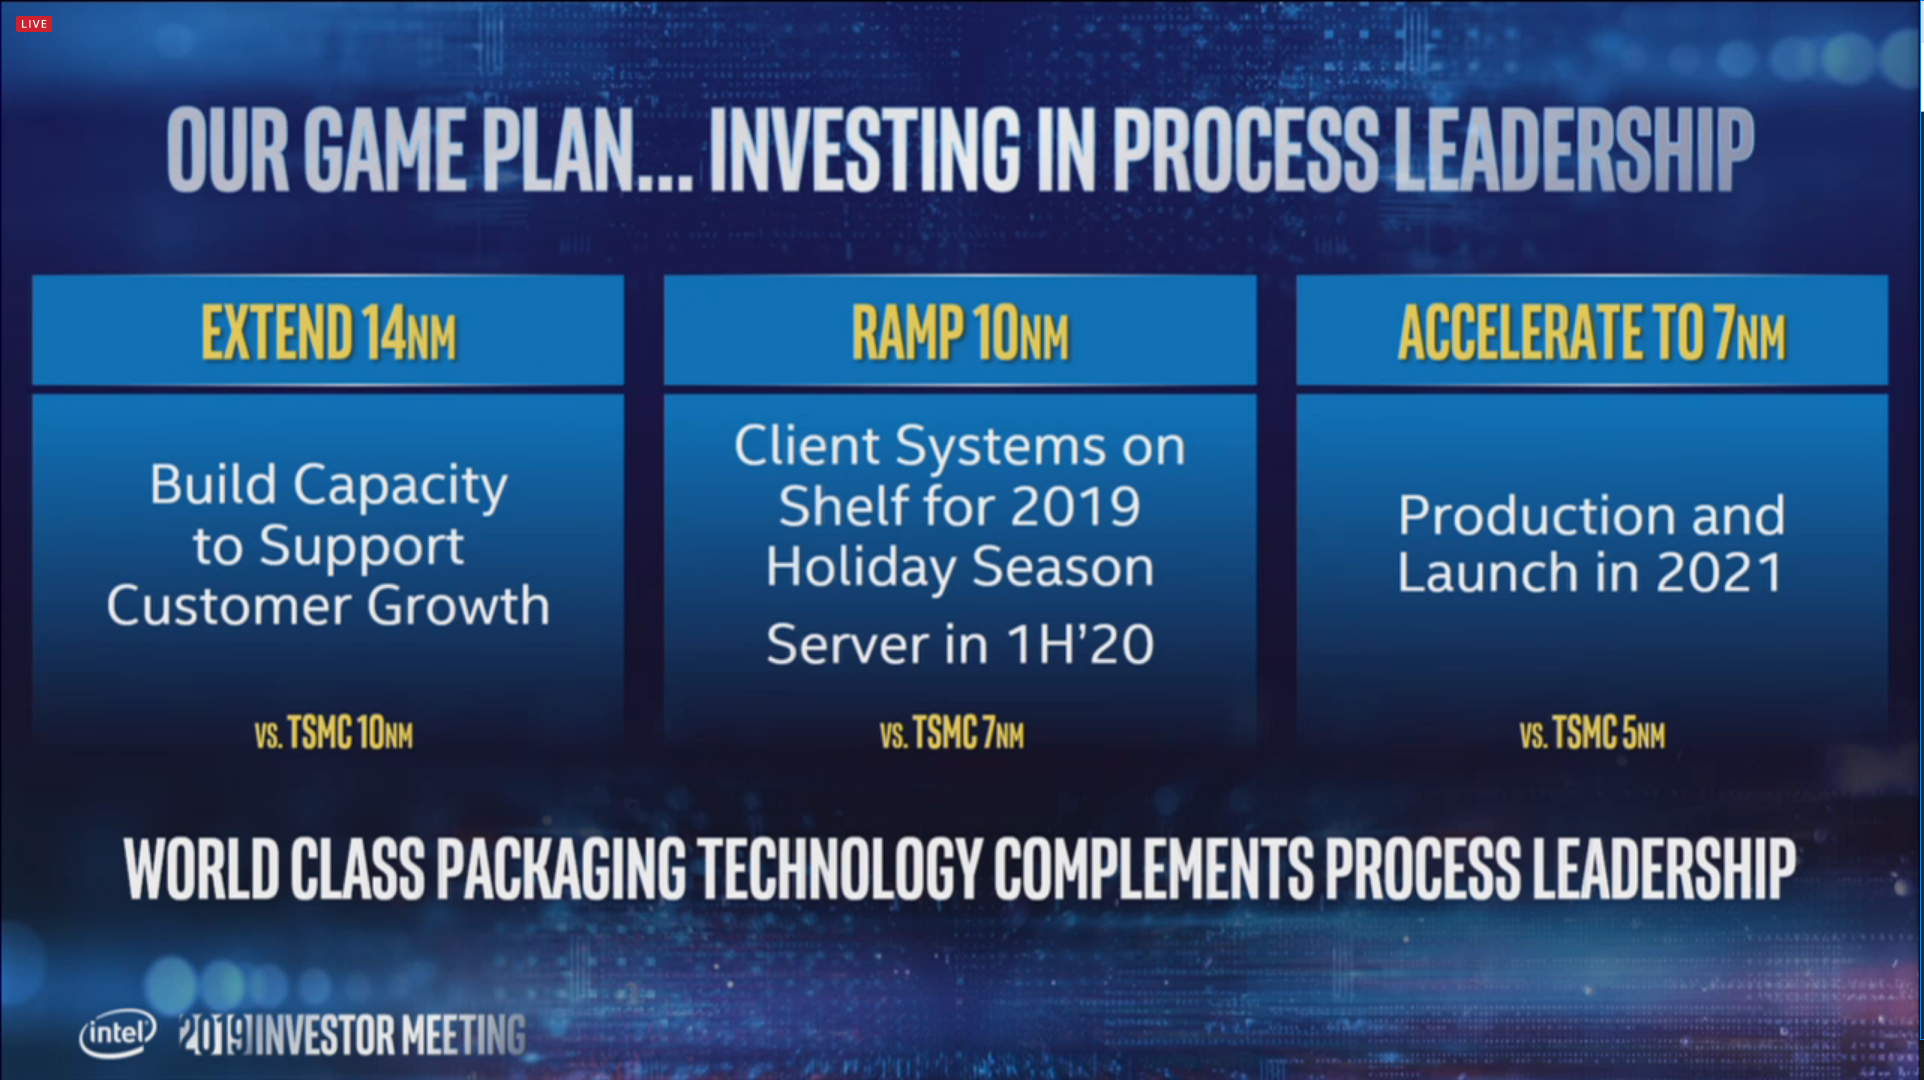 Intel Announces Roadmap For Processors; 7nm Chips Arriving In 2021